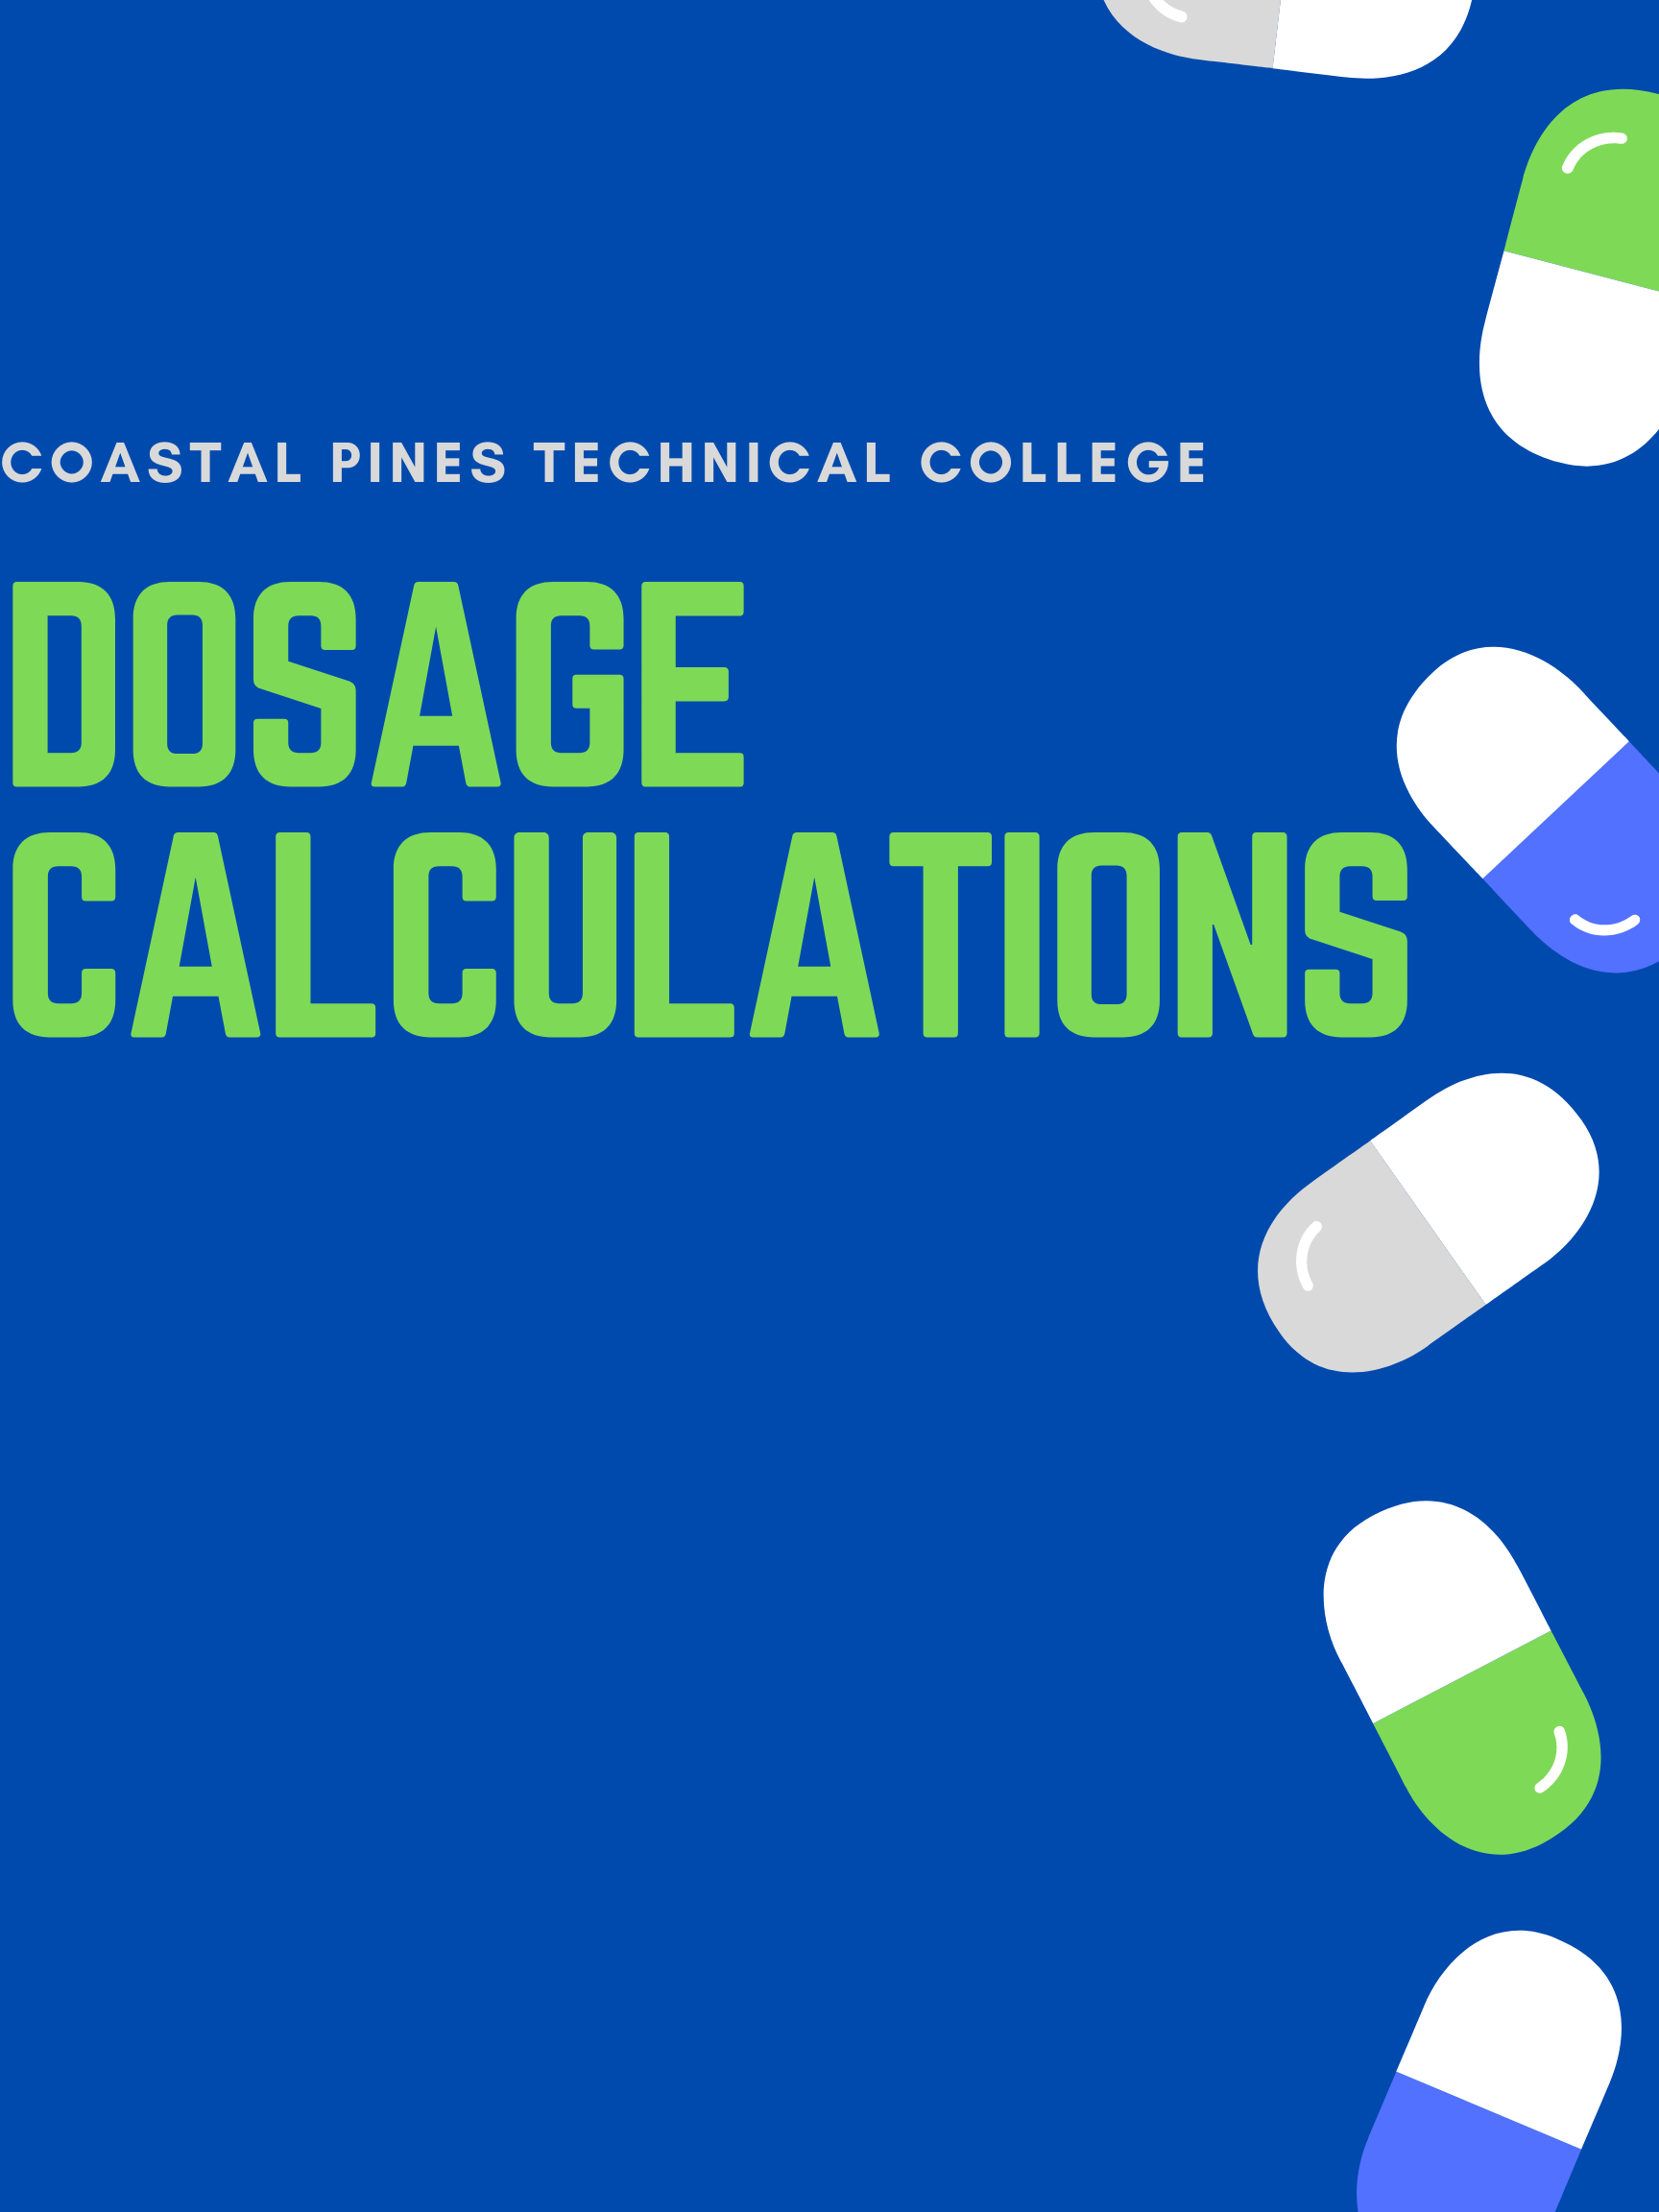 Coastal Pines Technical College Dosage Calculations